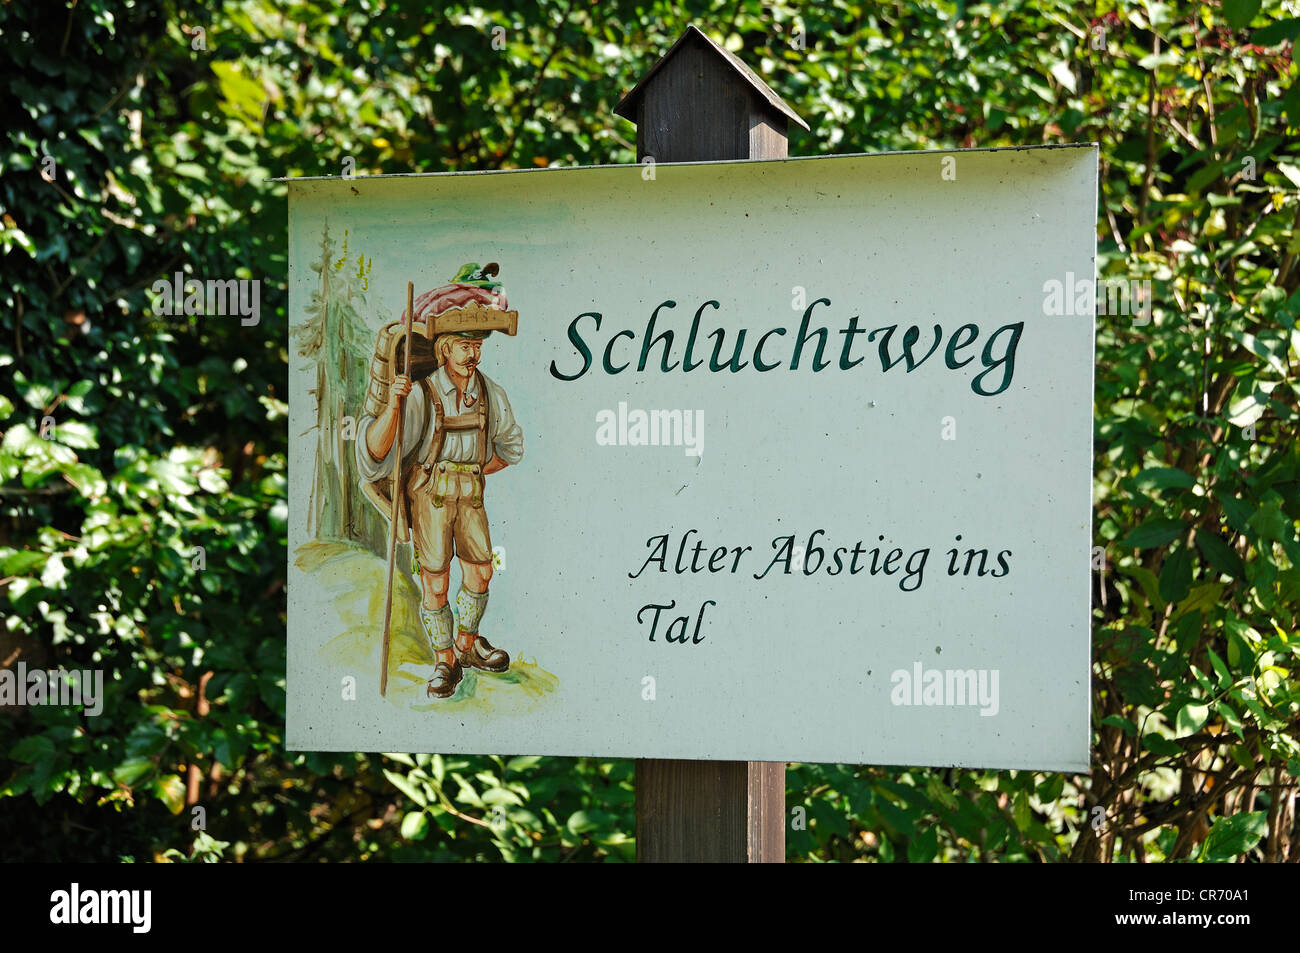 Signpost for 'Schluchtenweg, alter Abstieg ins Tal', German for 'gorge trail, old descent into the valley', - Stock Image